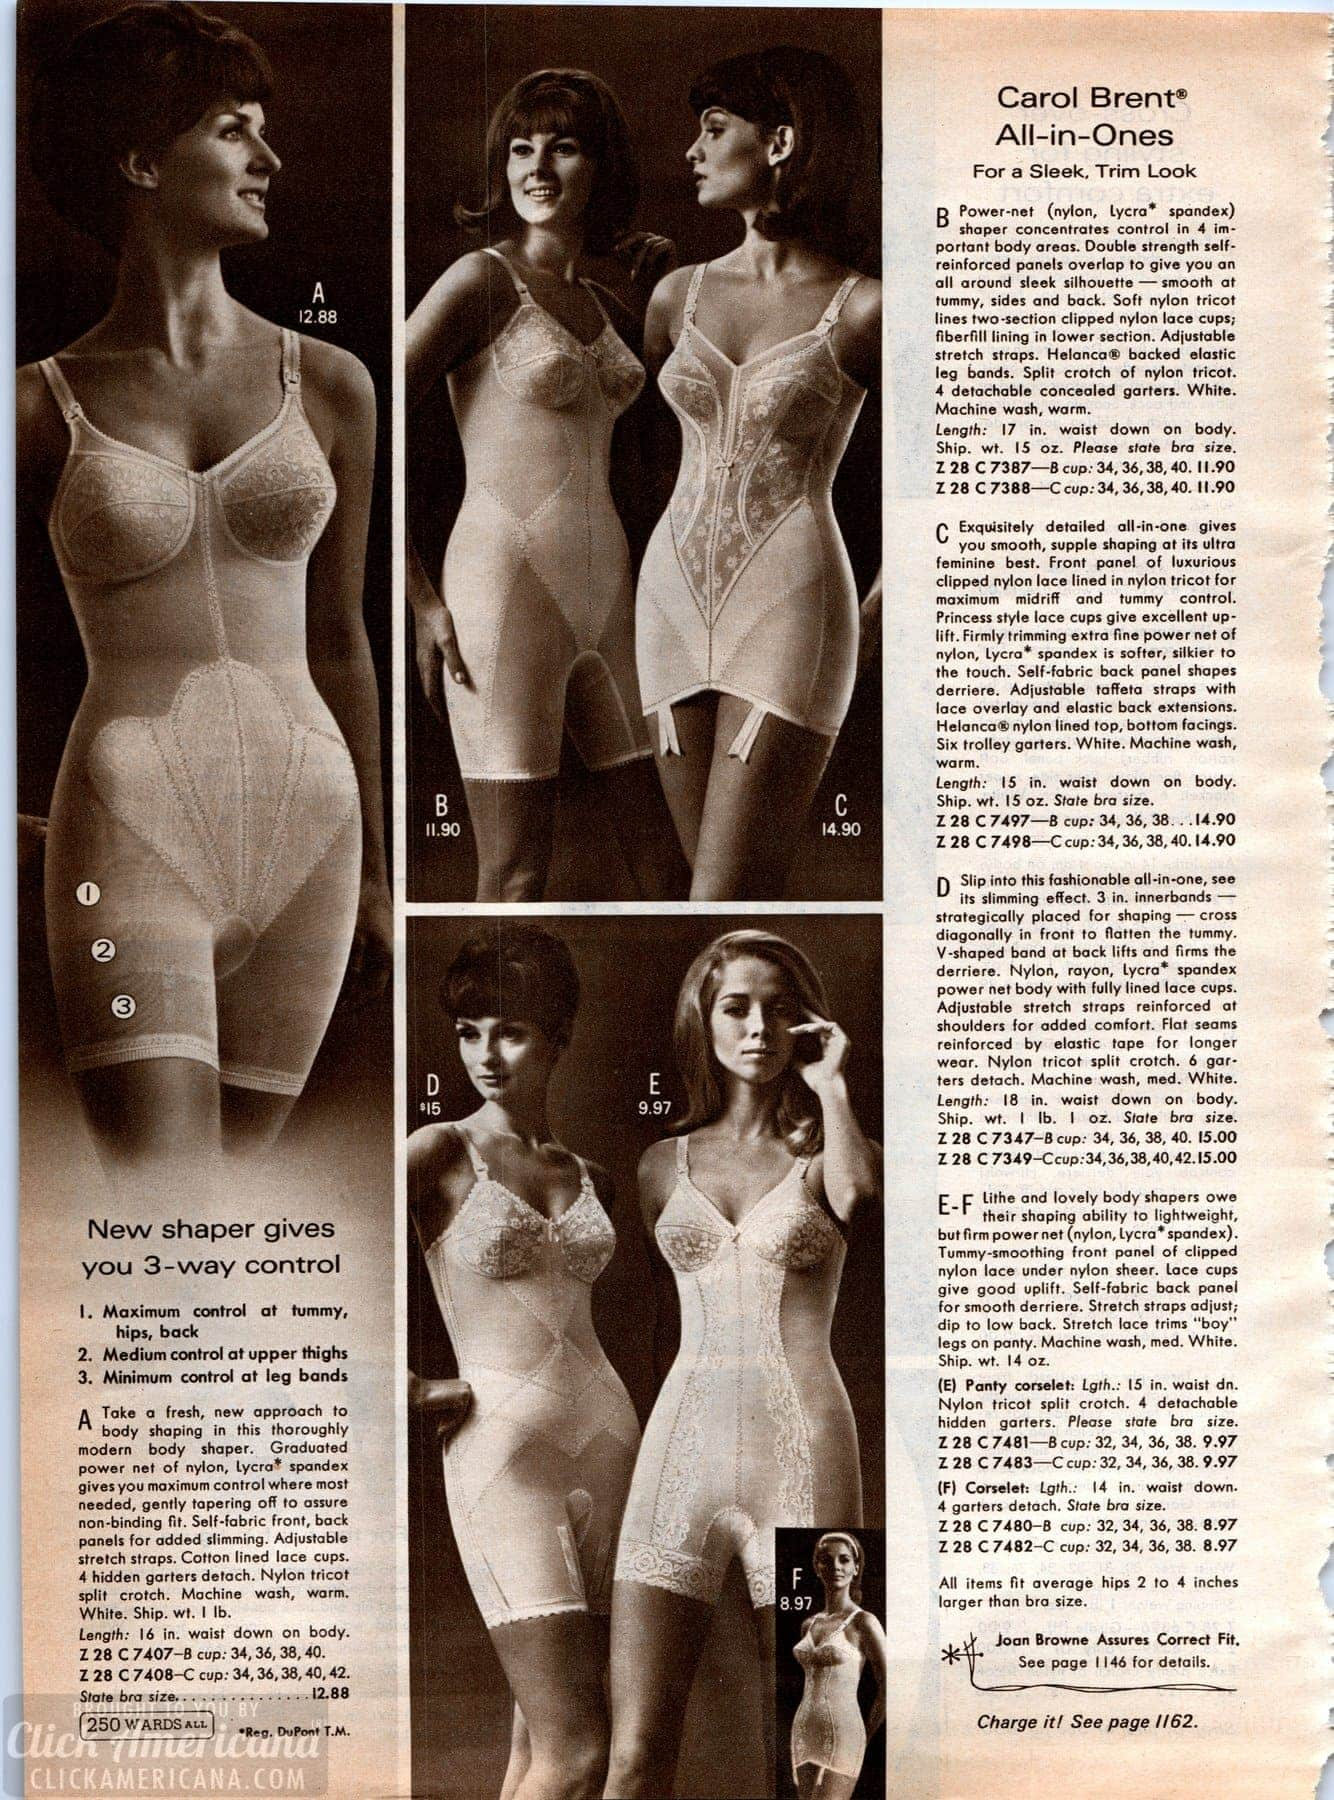 1a36b58cb2d Vintage lingerie - all-in-one body shapers from the 60s - Click ...